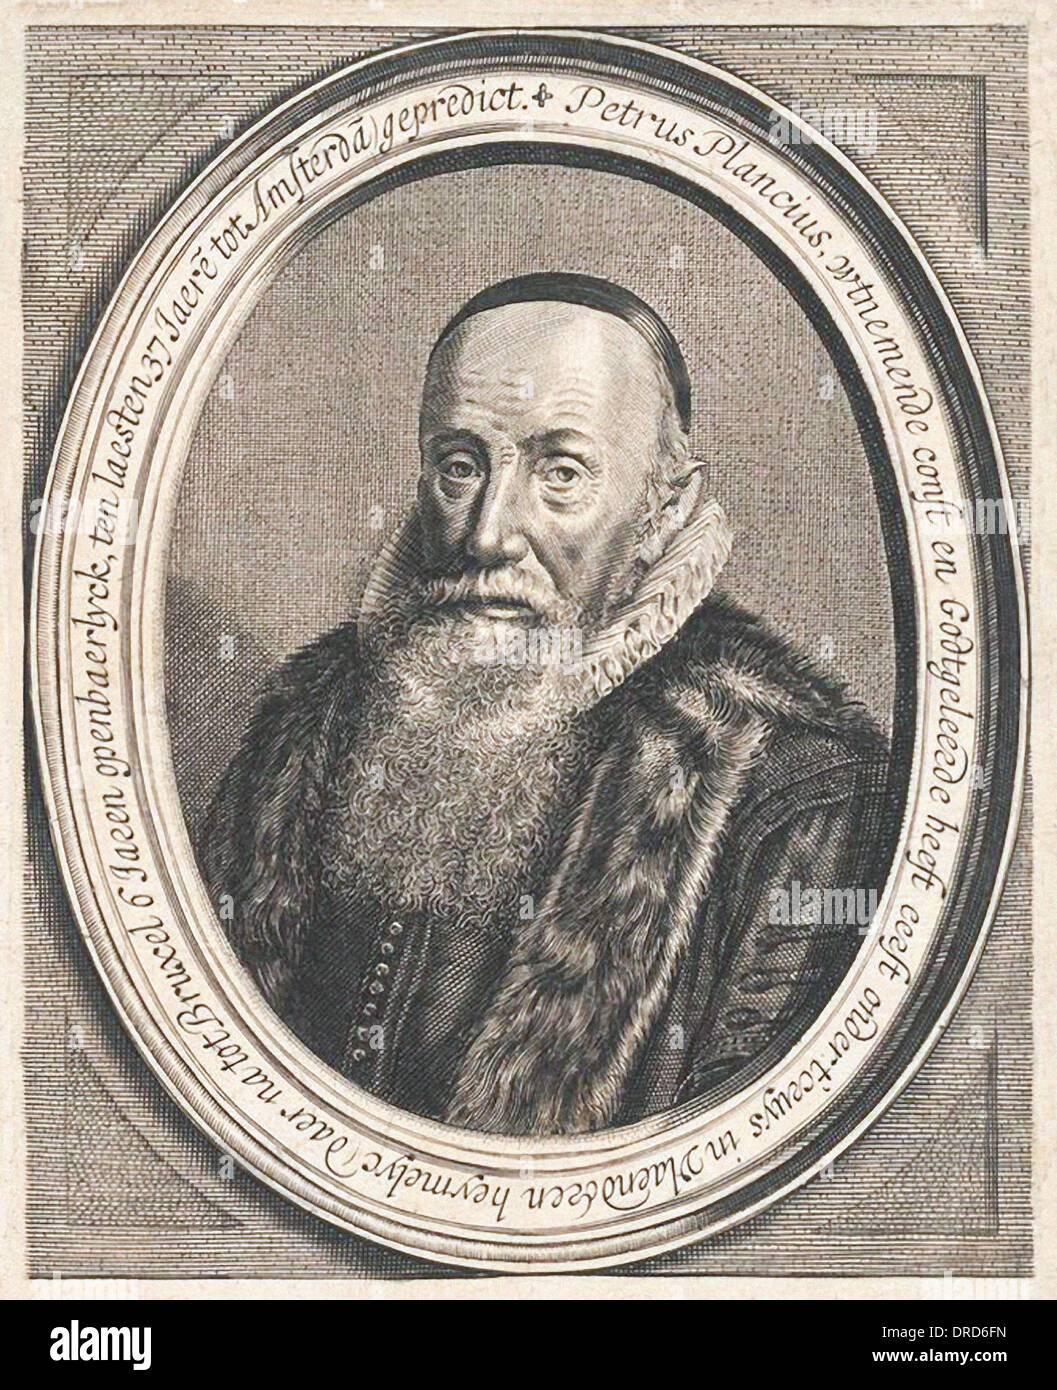 Petrus Plancius (1552-1622) Dutch astronomer, cartographer and mathematician. Founder and mapmaker for Dutch East India Company. - Stock Image